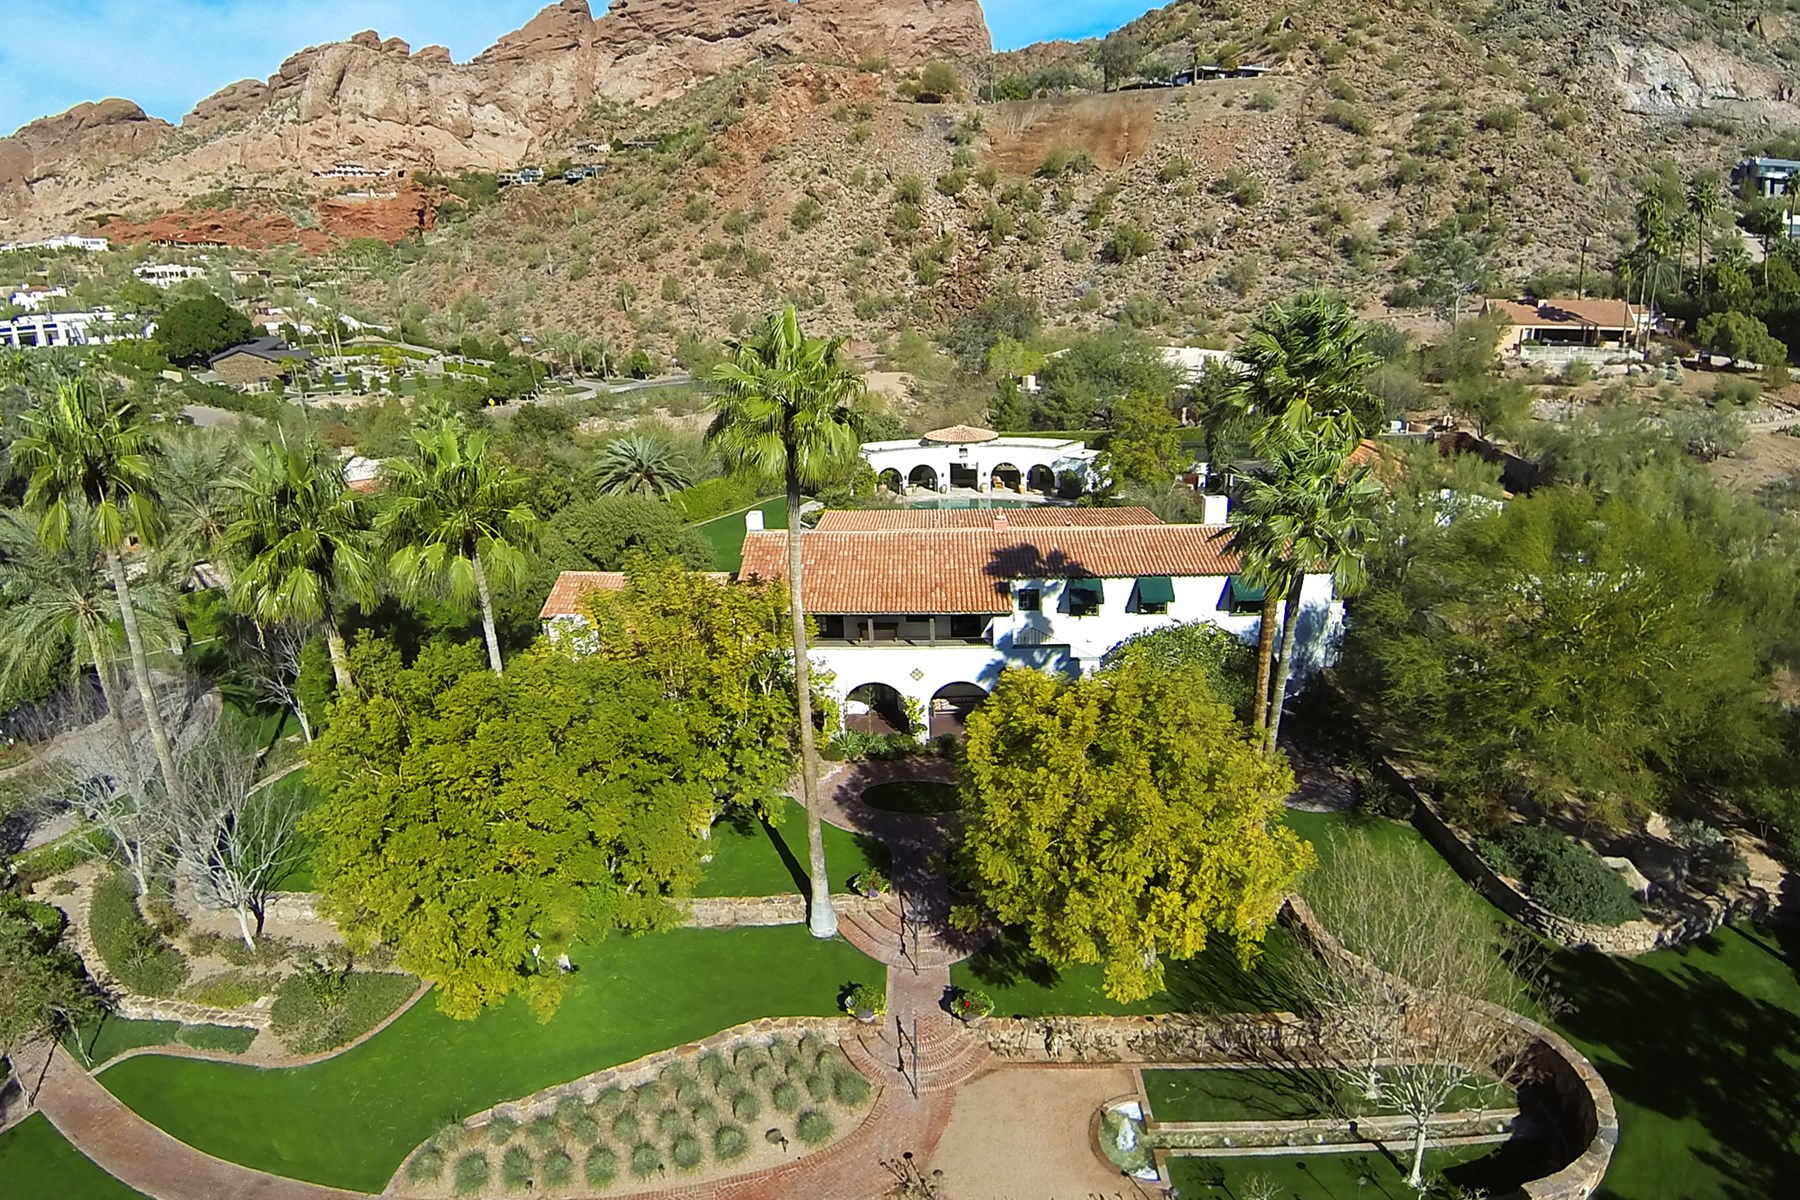 Single Family Home for Sale at Treasured Estate With Unique Finishes From The Finest Local & National Artisans 5015 N Arcadia Drive Phoenix, Arizona, 85018 United States